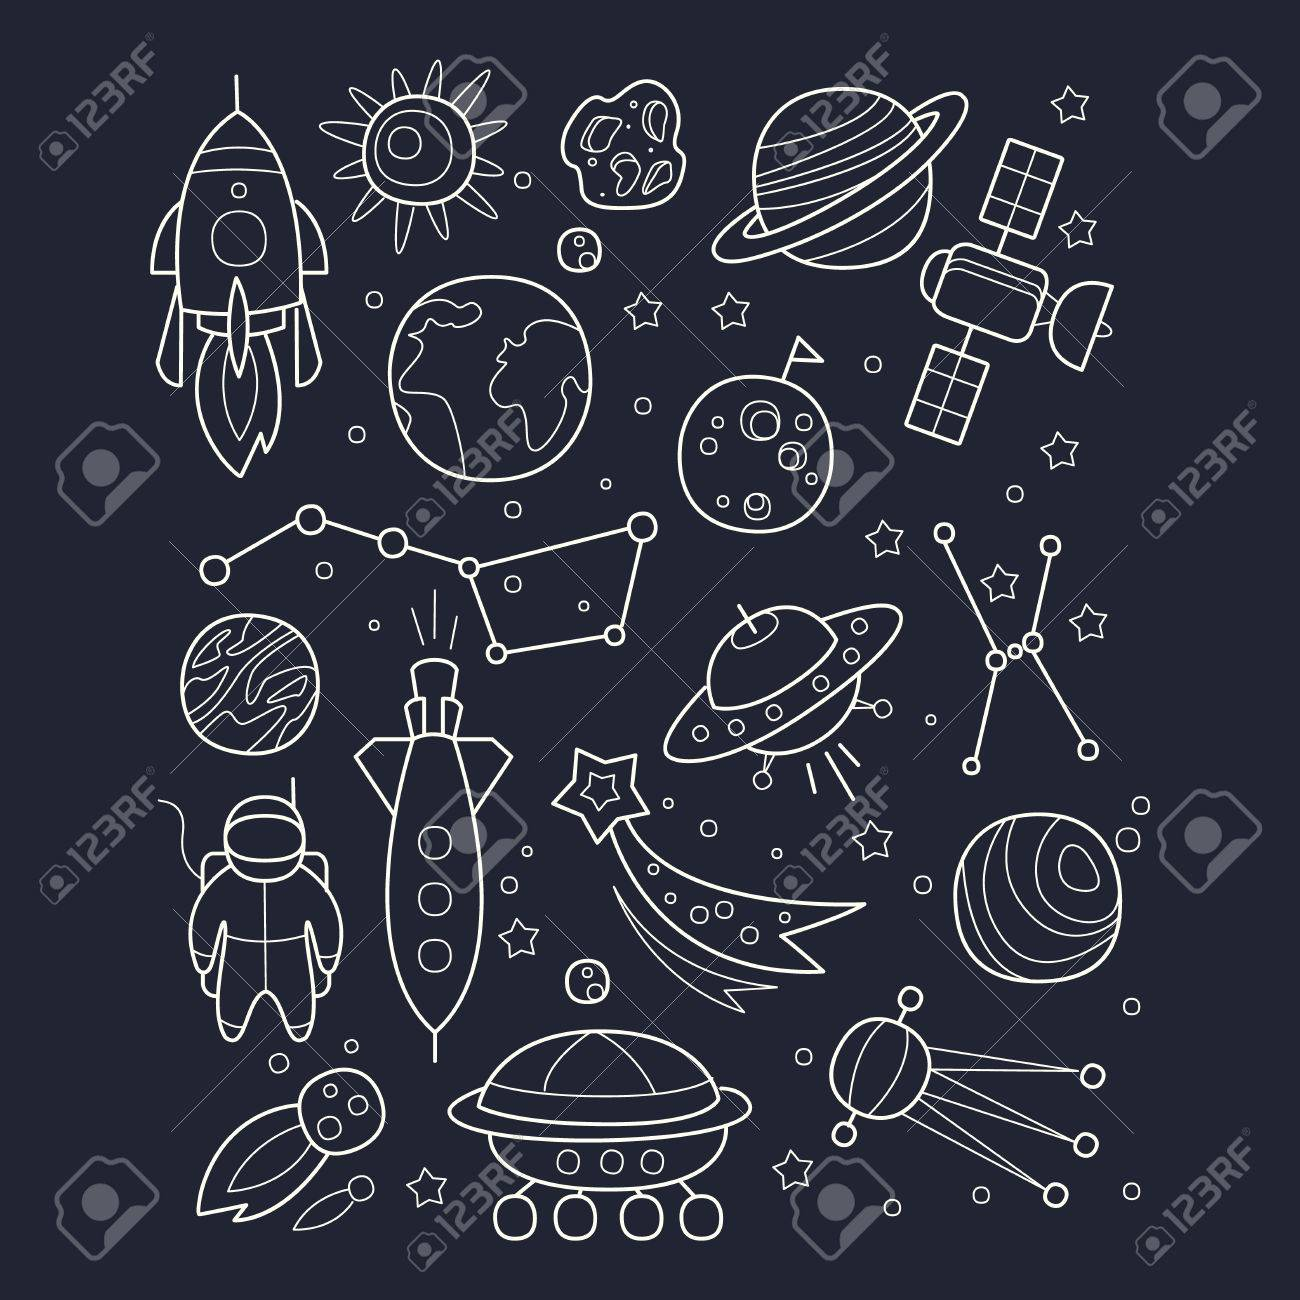 Space And Cosmic Objects Black And White Wallpaper With Contour